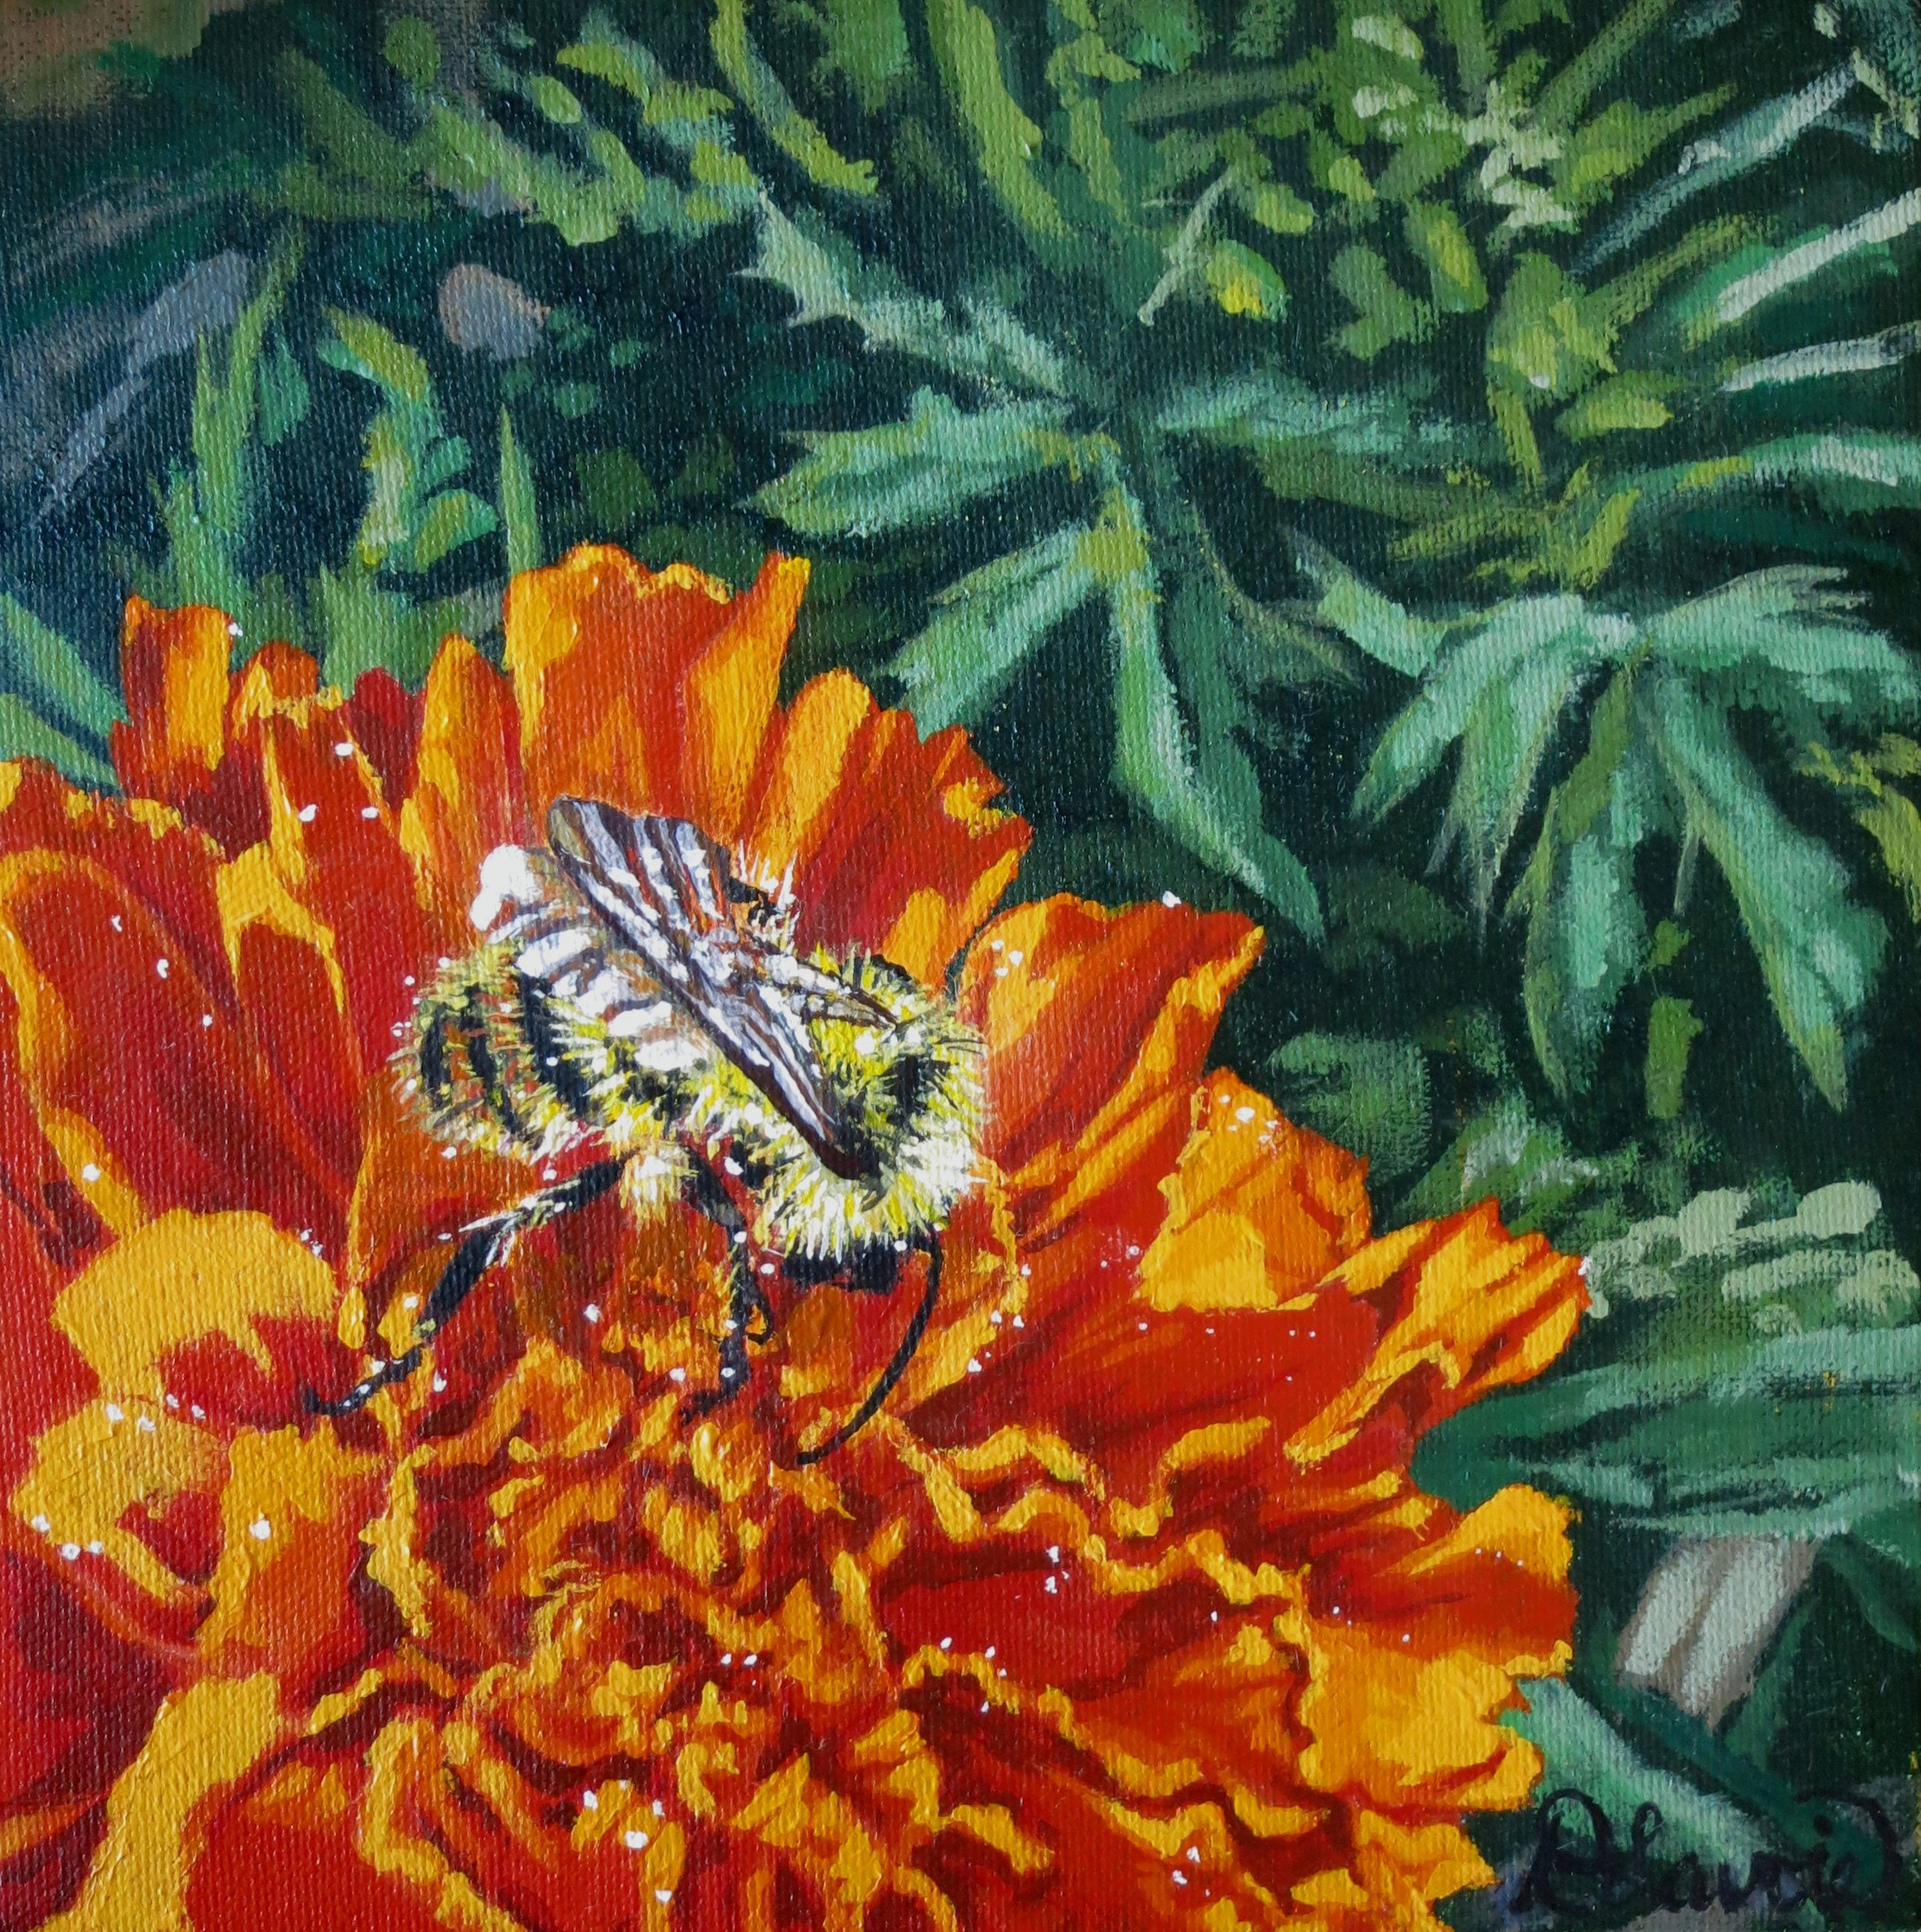 """Bee Enduring           Acrylic on Canvas - 8"""" x 8""""    Both the original and limited edition prints are available.   I know marigolds do not attract insects. While brainstorming a title for this piece, I read that bees wouldn't like them either. Hmmm....funny my marigold seemed to attract this guy! I love the brilliant colours shining from this scene - painting it was a joy."""